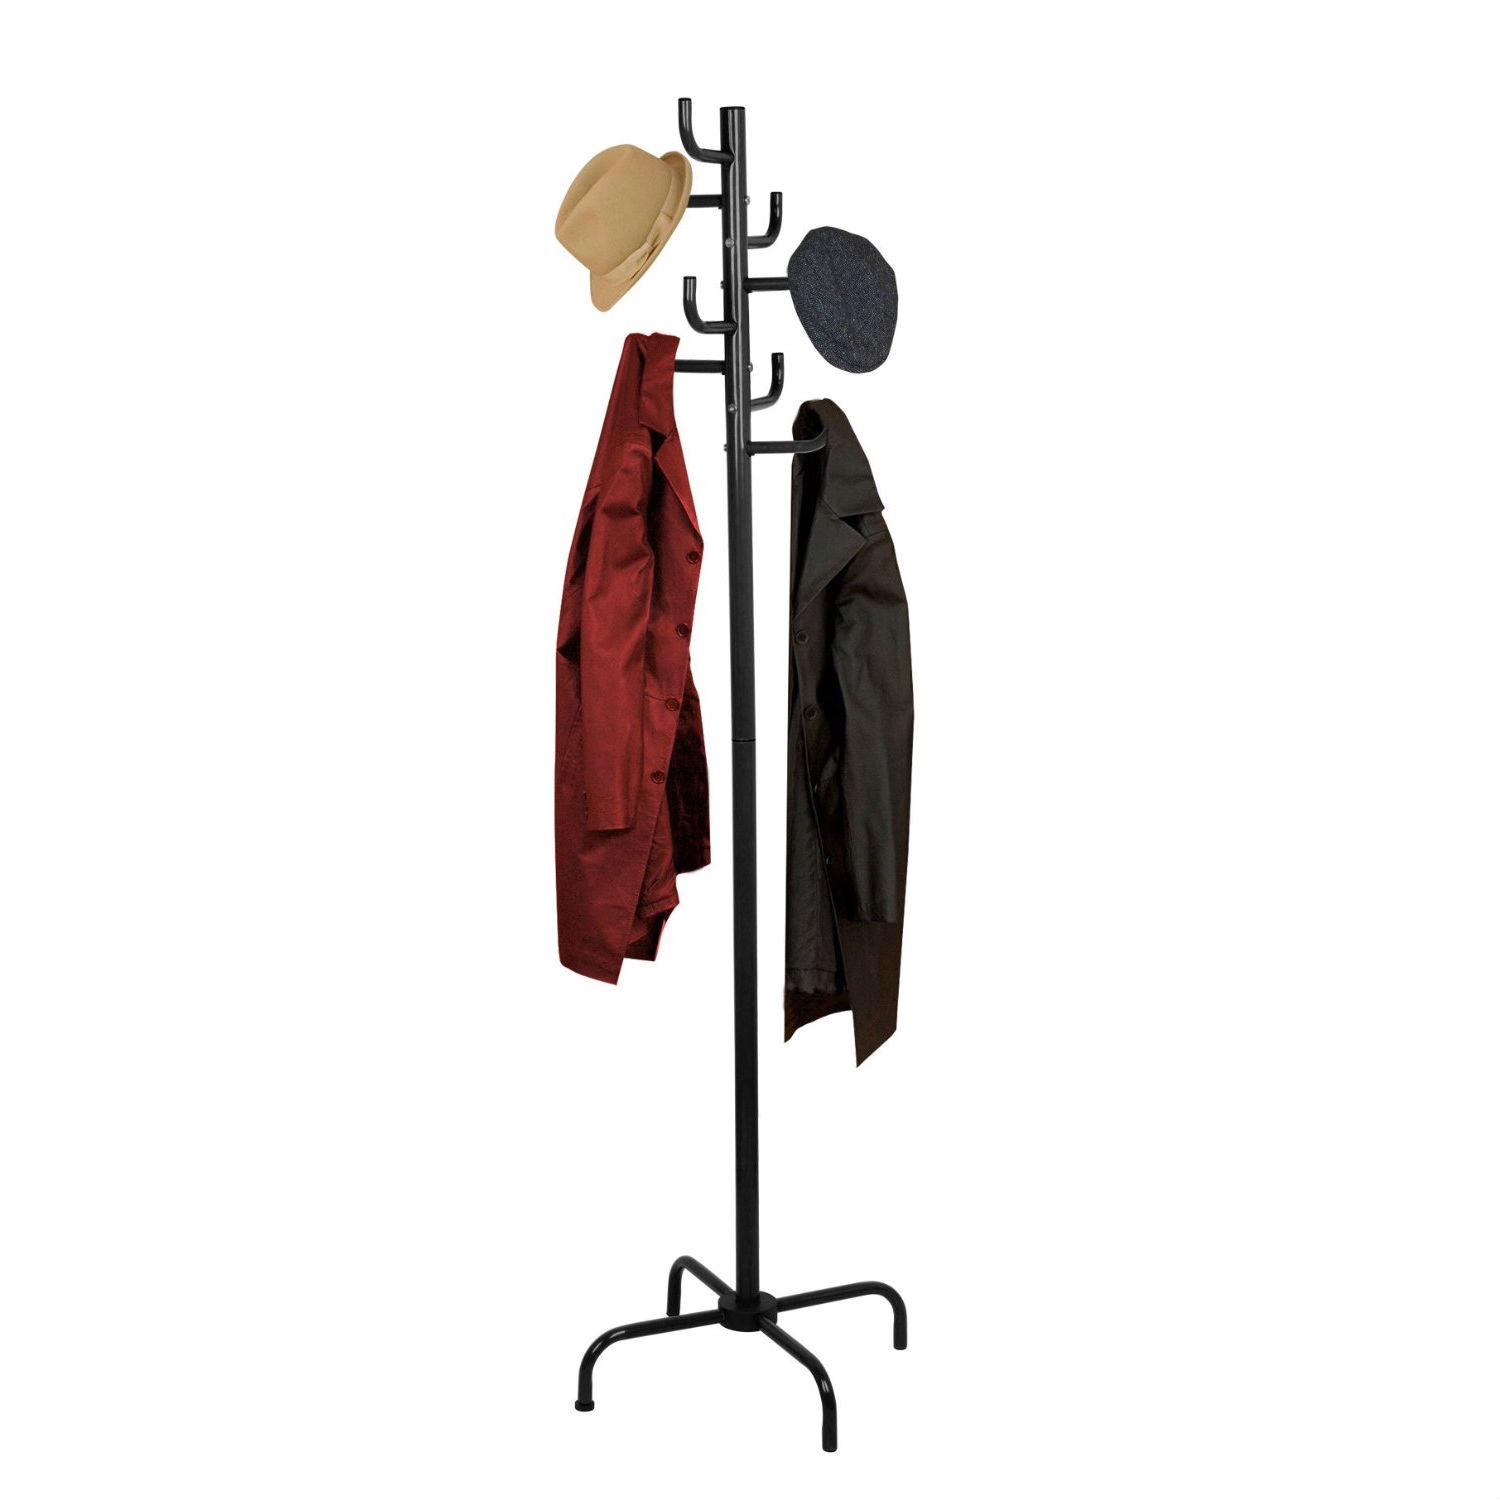 Black Metal Coat Rack Entry Hall Tree Hat Rack, HBCR35 :  This Black Metal Coat Rack Entry Hall Tree Hat Rack provides efficient storage and displays garments in an elegant manner. Features a sturdy base support, and 8 hooks. Constructed of chrome, marble, and black power coated finish.